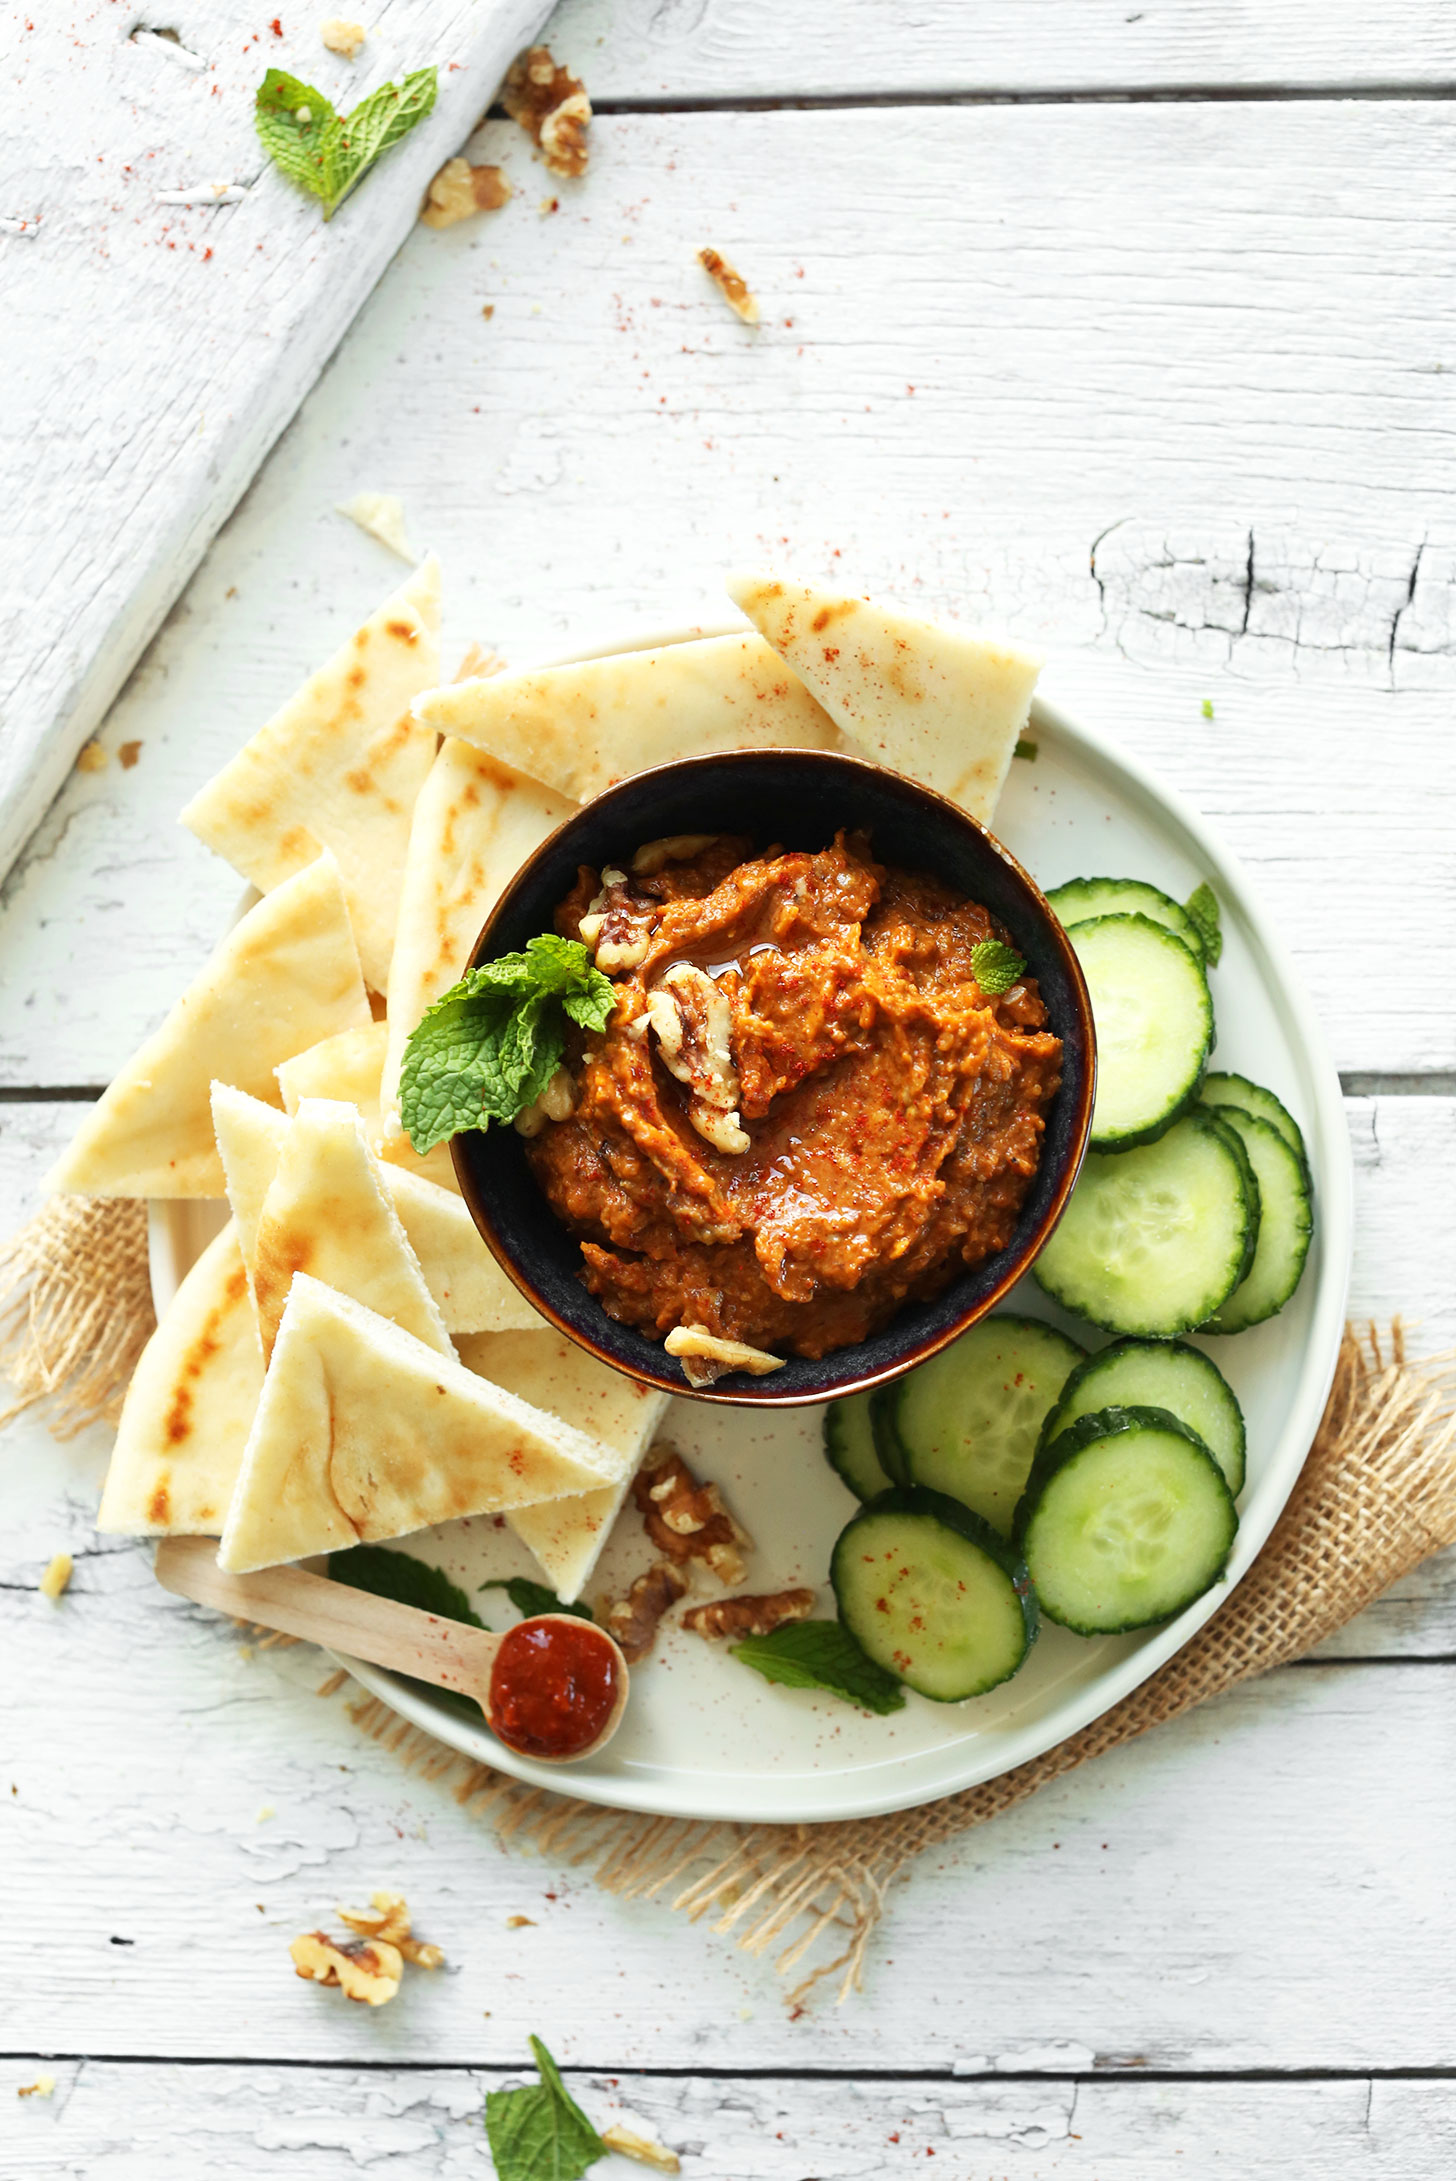 Bowl of our Smoky Harissa Eggplant Dip recipe surrounded by sliced cucumbers and pita bread for dipping